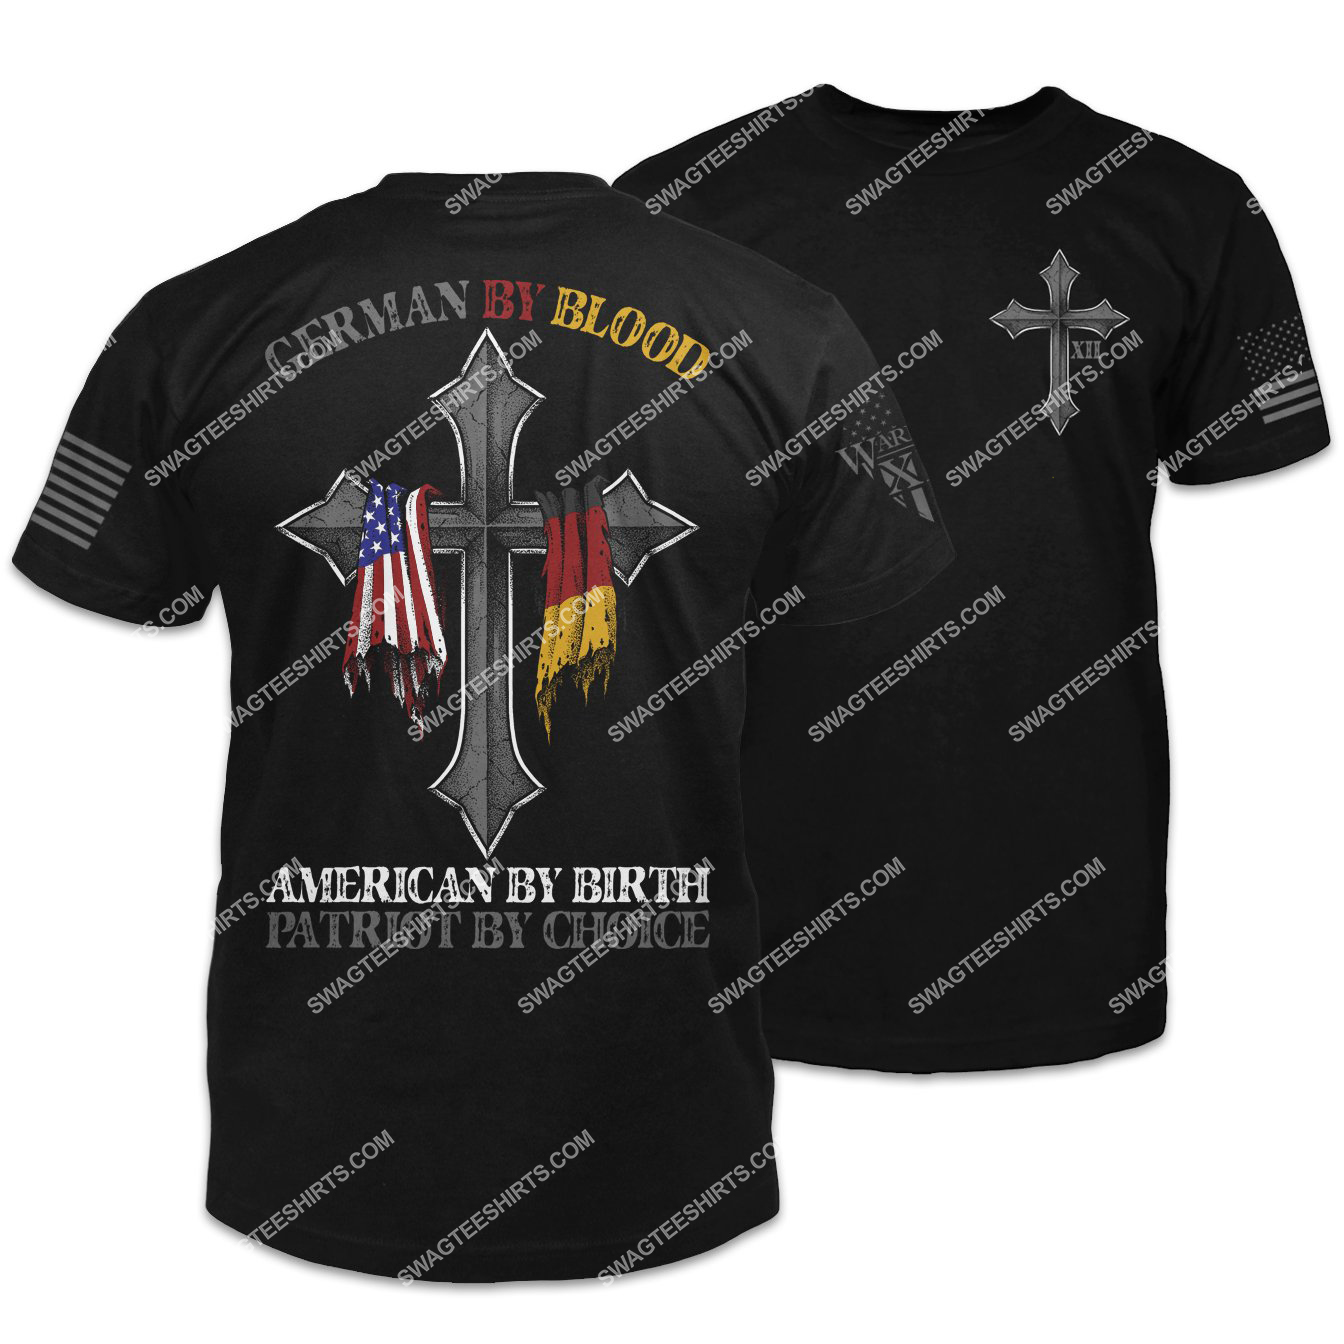 german by blood american by birth patriot by choice shirt 1